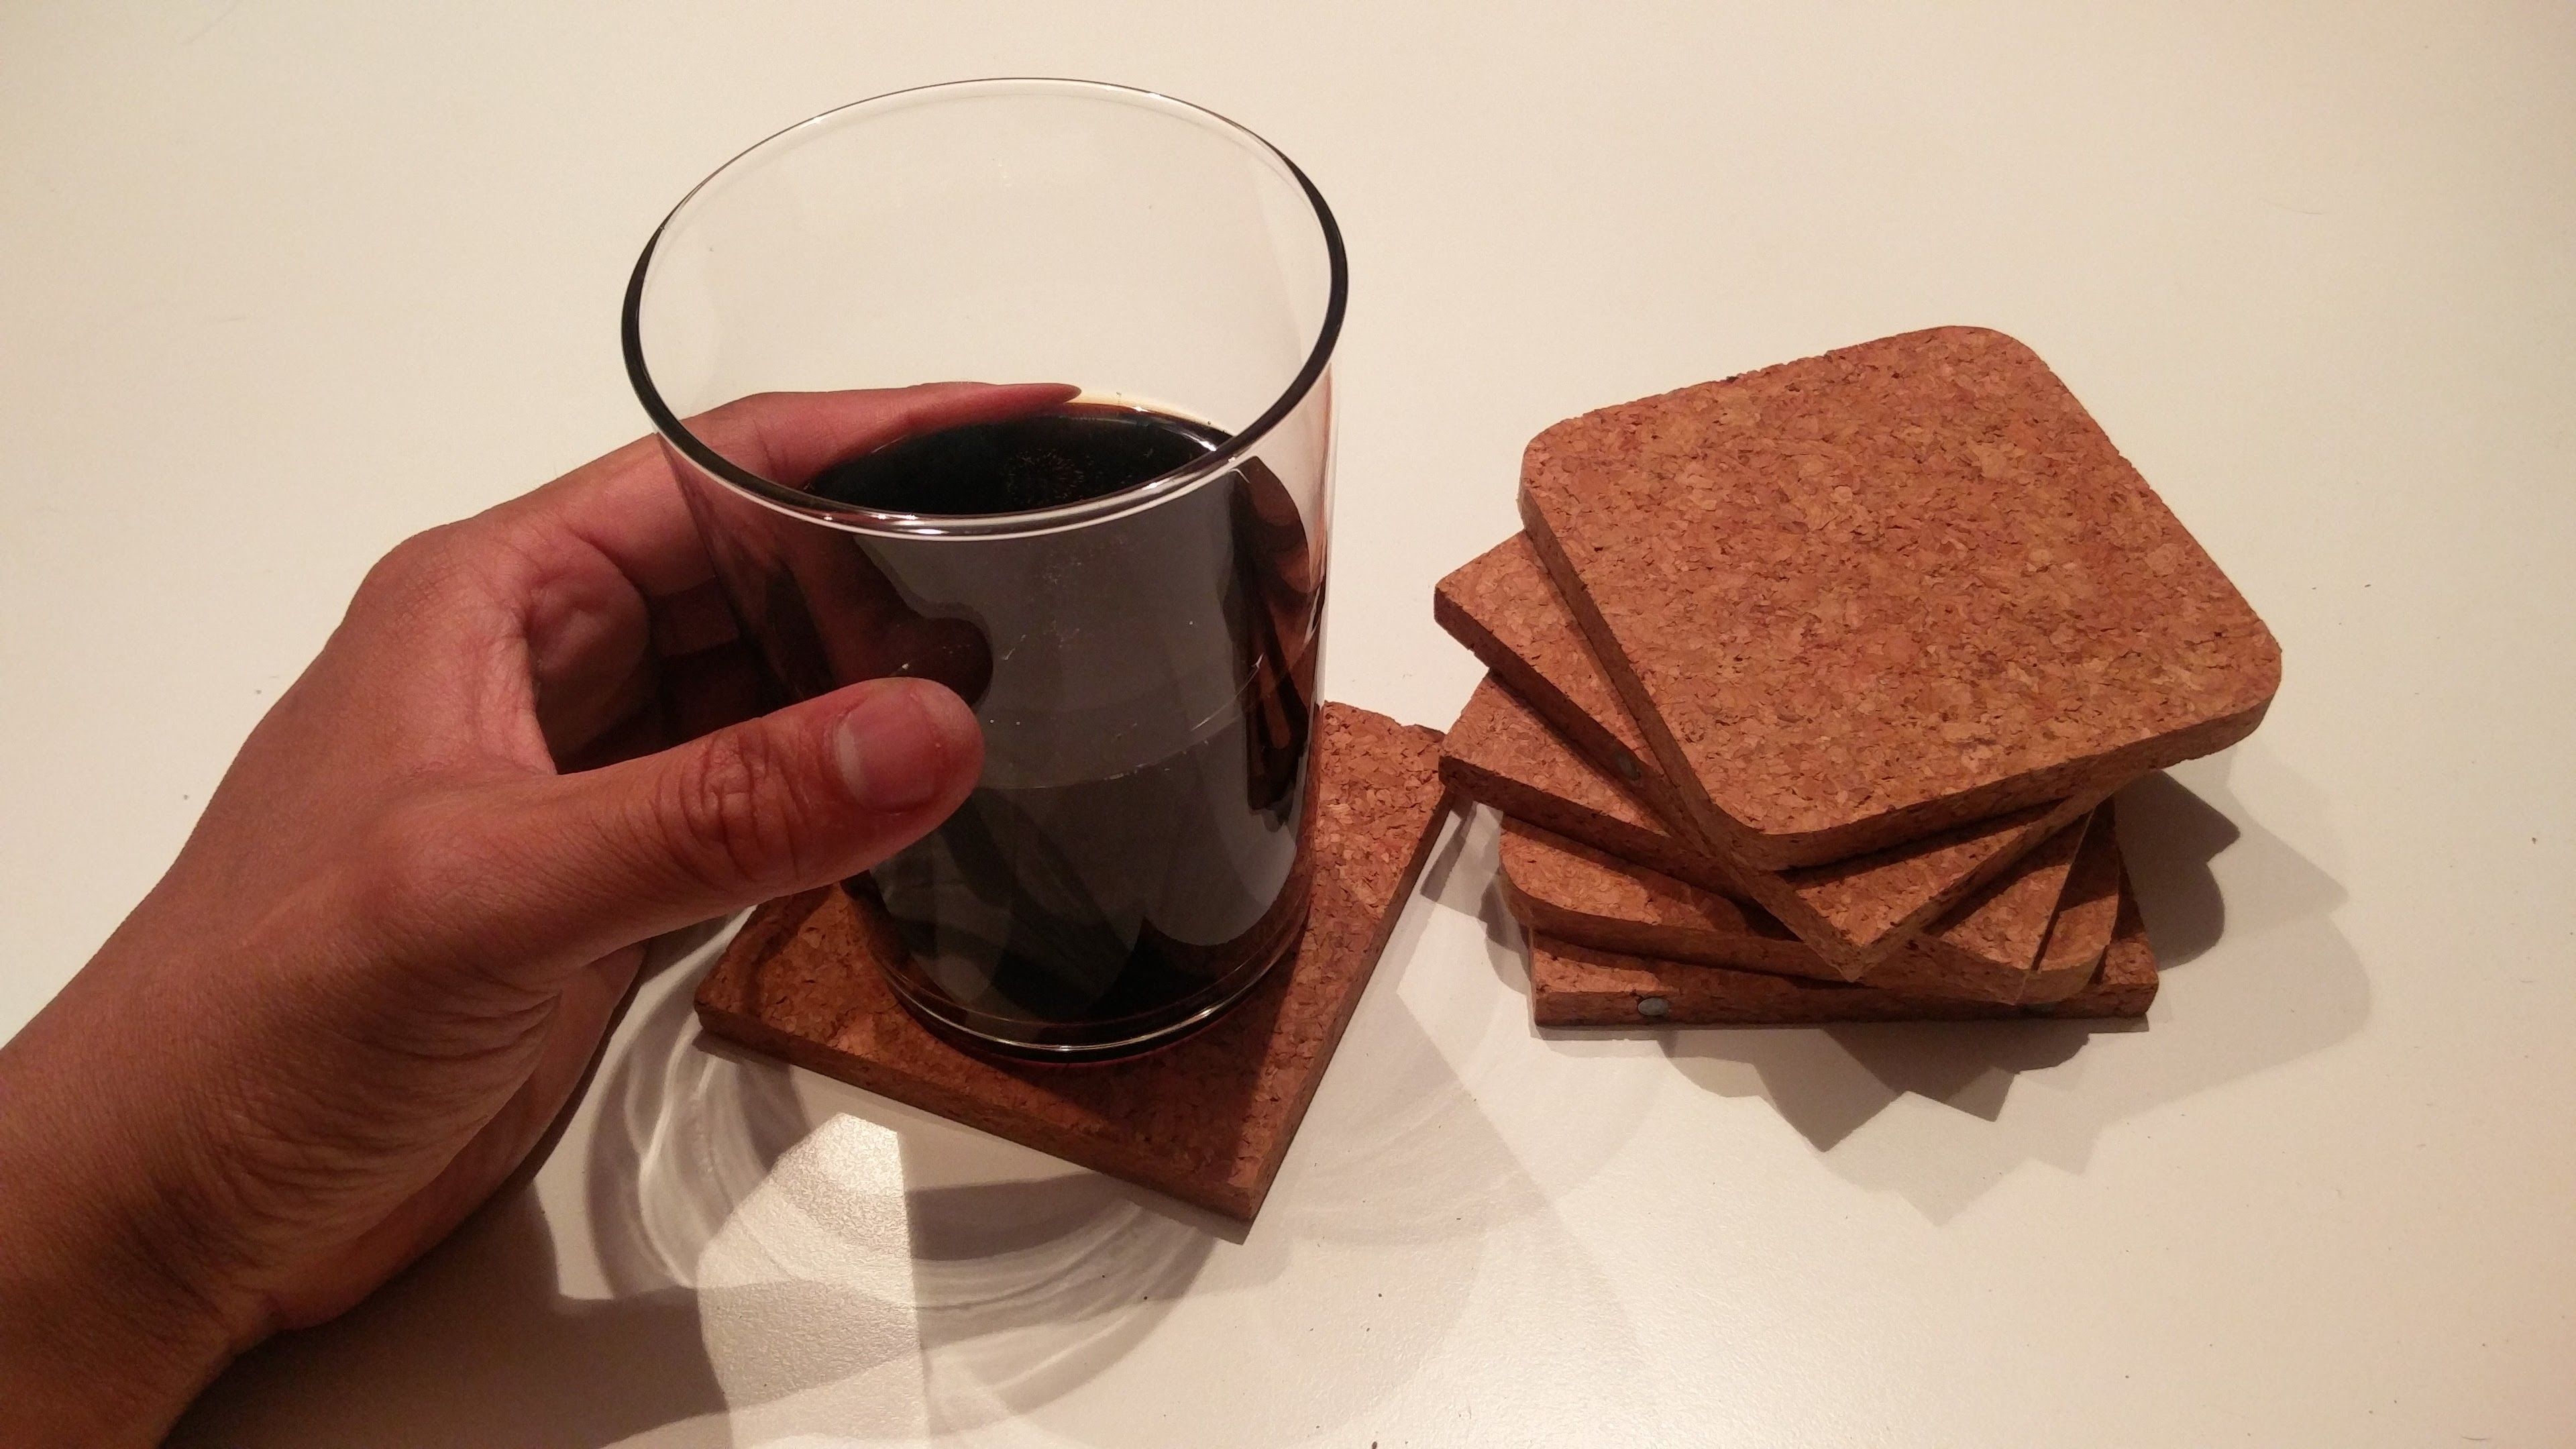 Magnetically Assembled Cork Coaster Mini-Chair